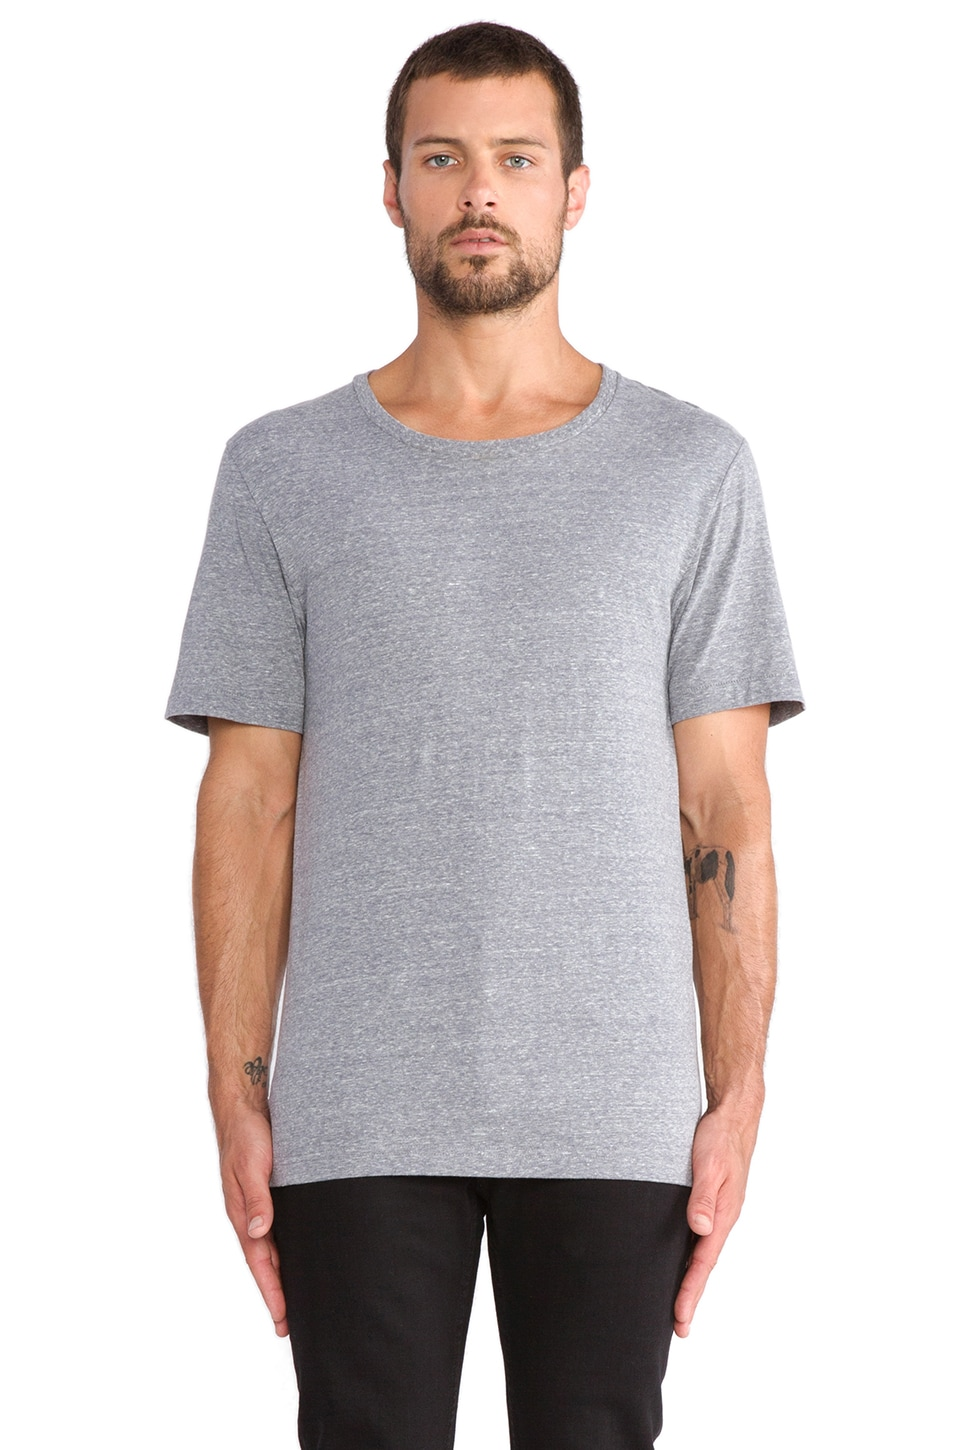 BLK DNM T-Shirt 3 in Light Grey Melange